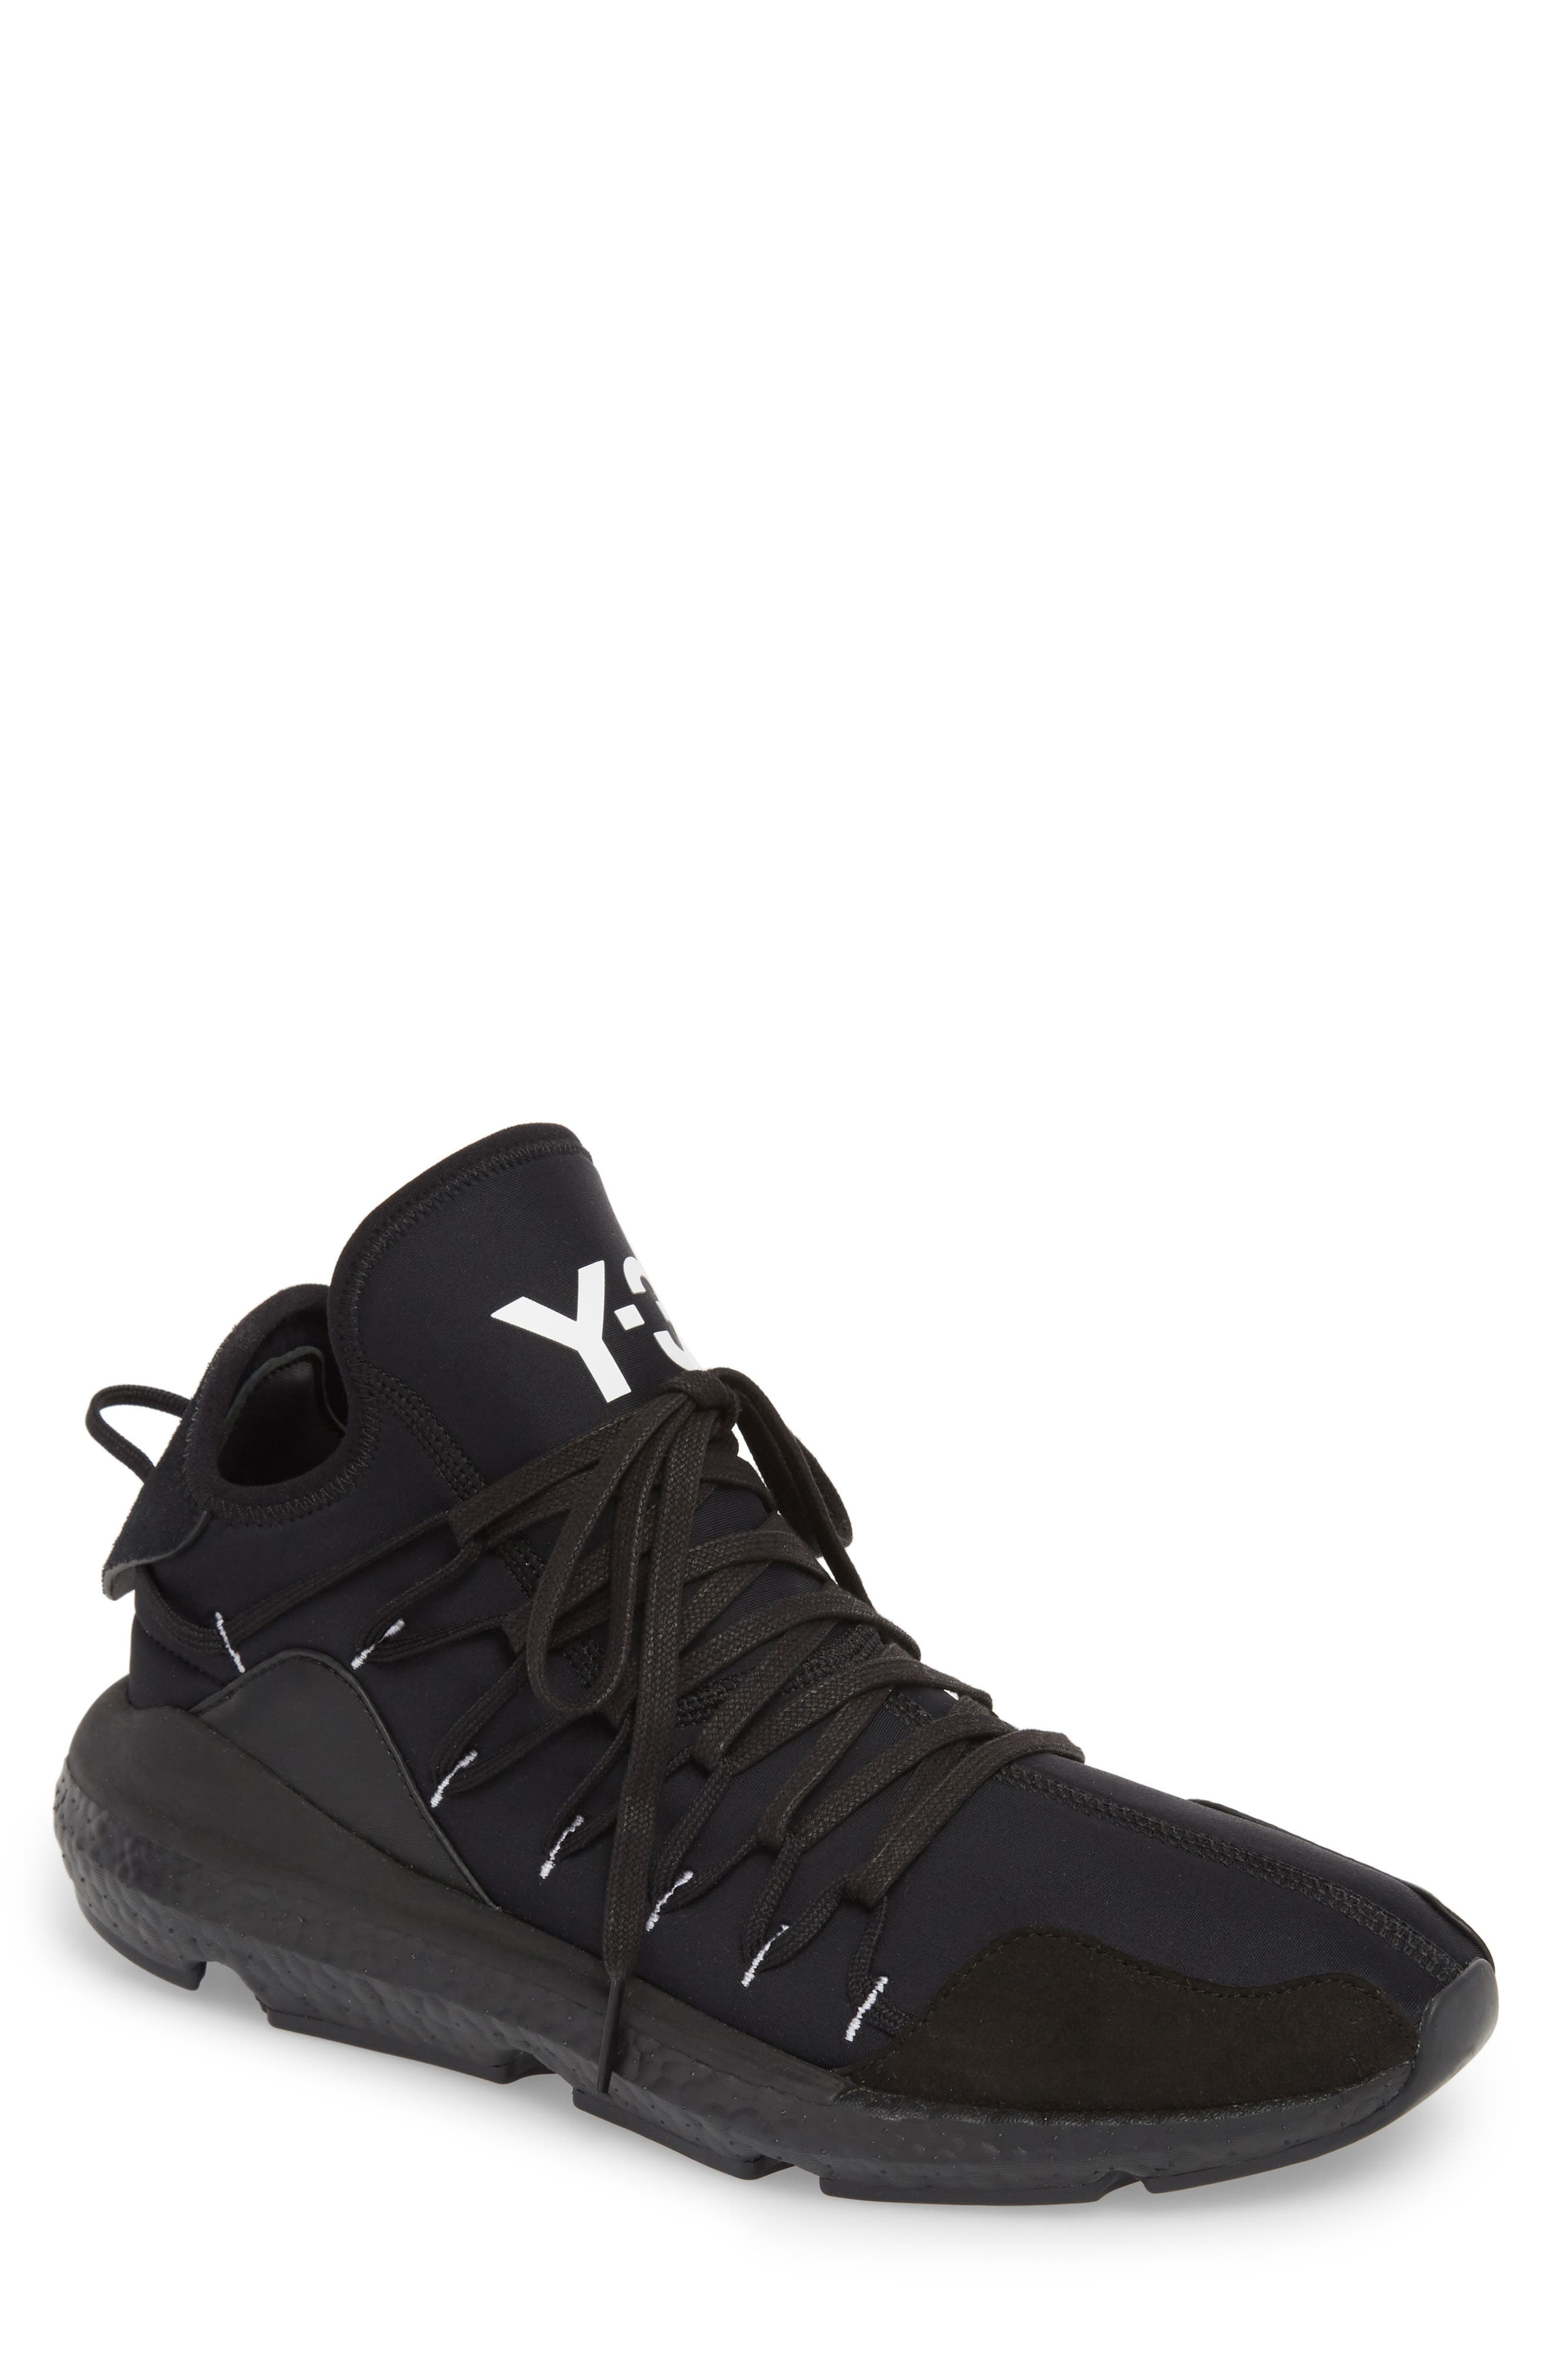 x adidas Kusari Sneaker,                         Main,                         color, Black/Black